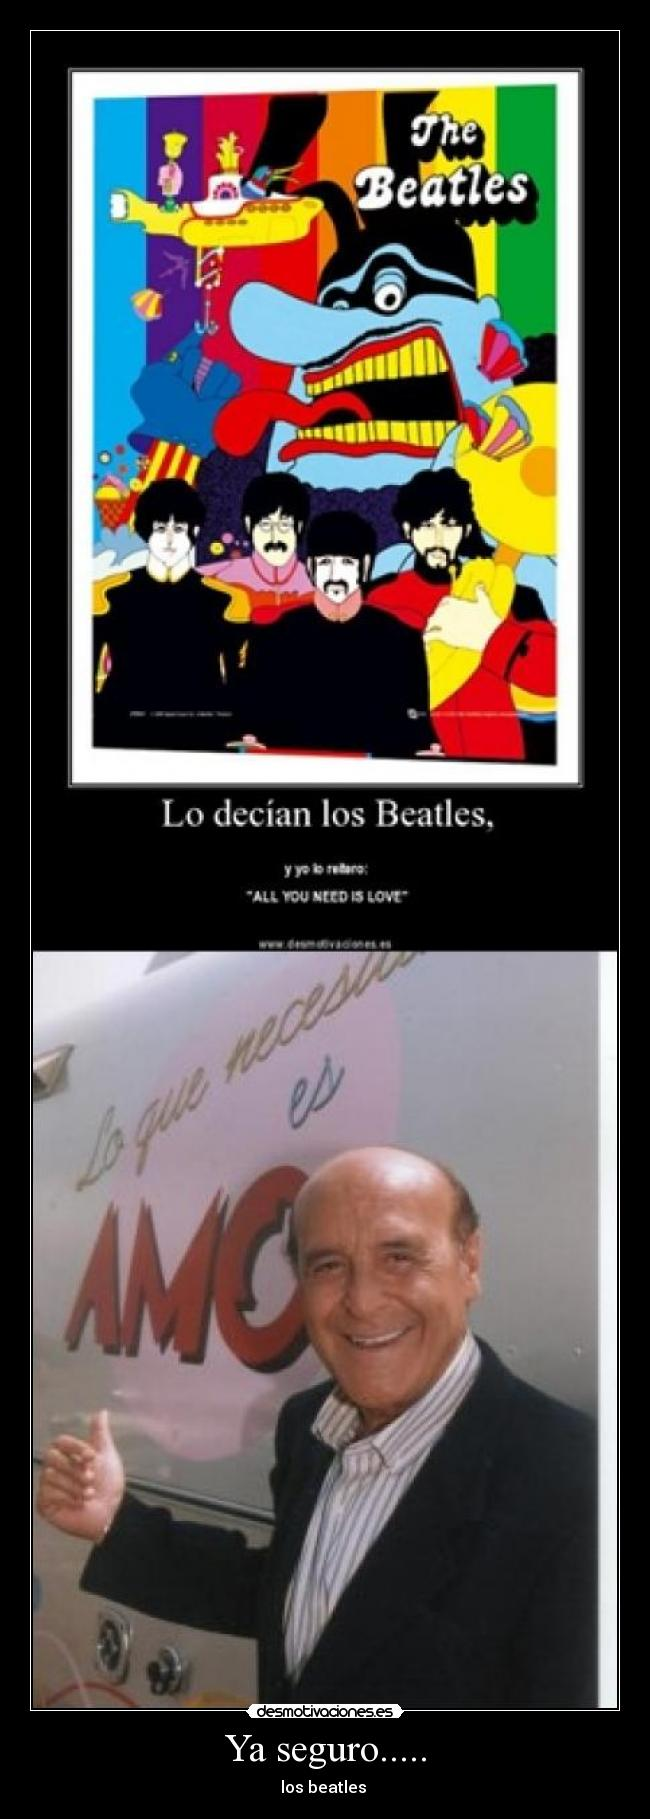 Ya seguro..... - los beatles